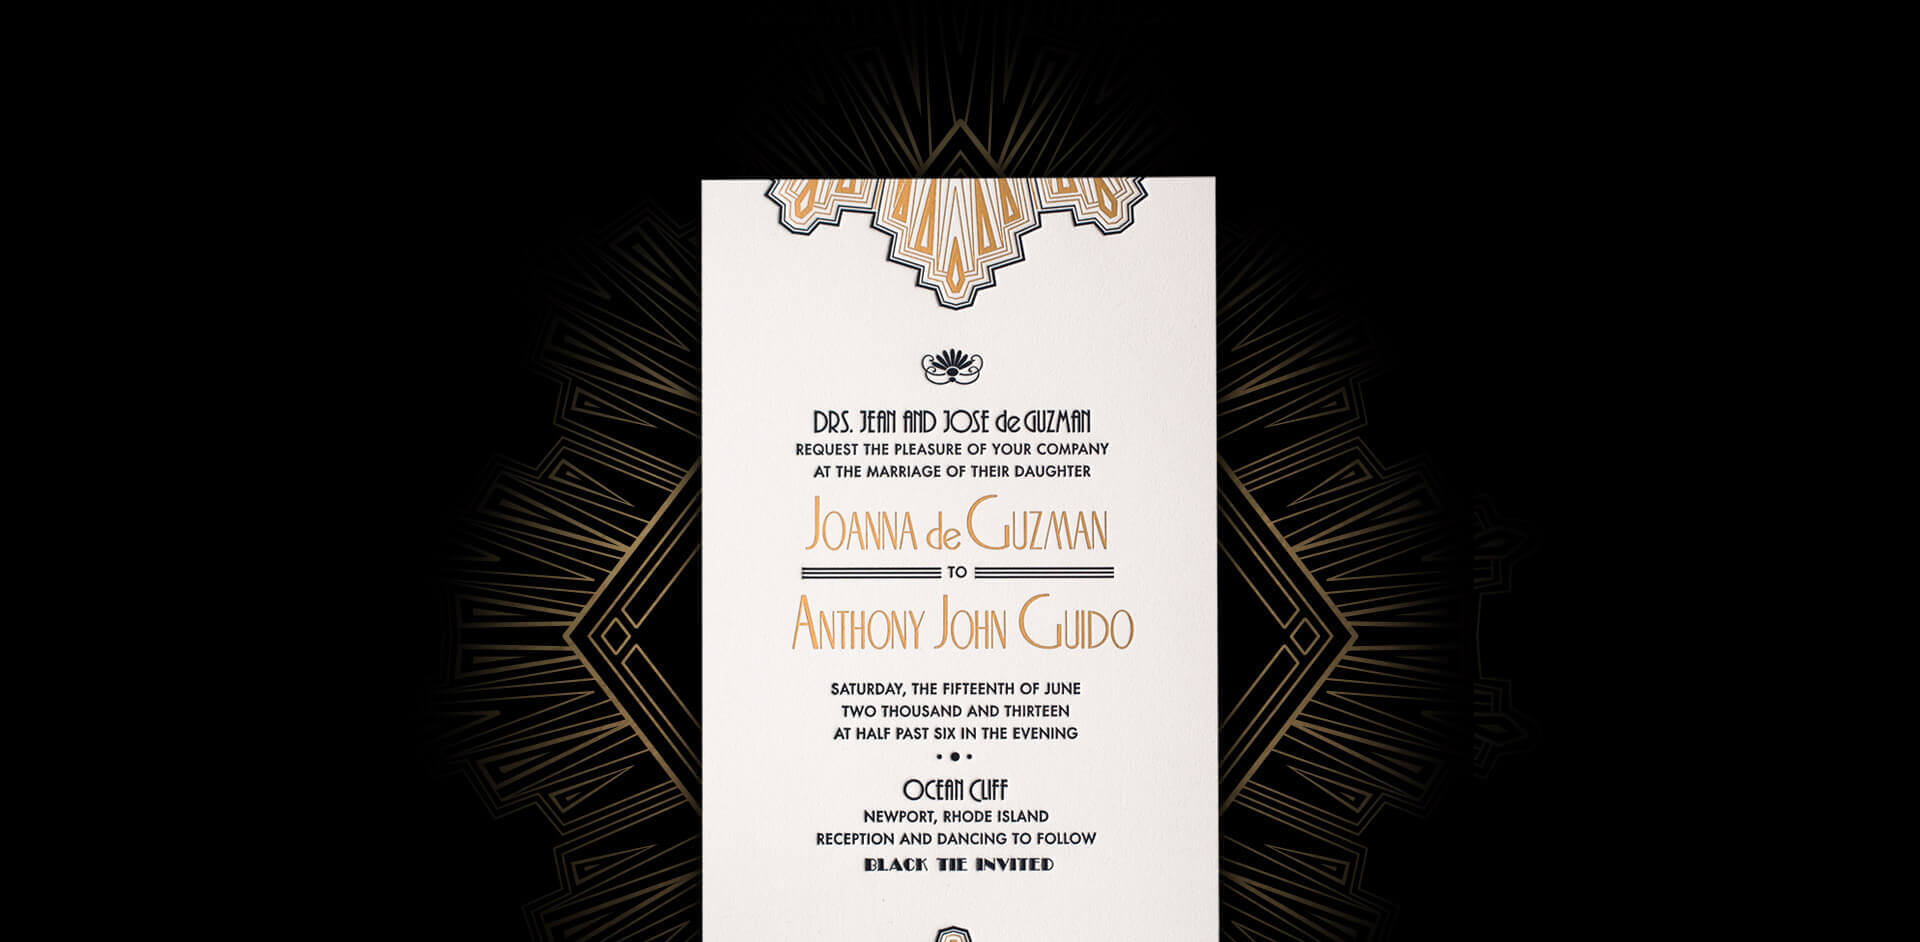 Art Deco gold and black wedding invitation card